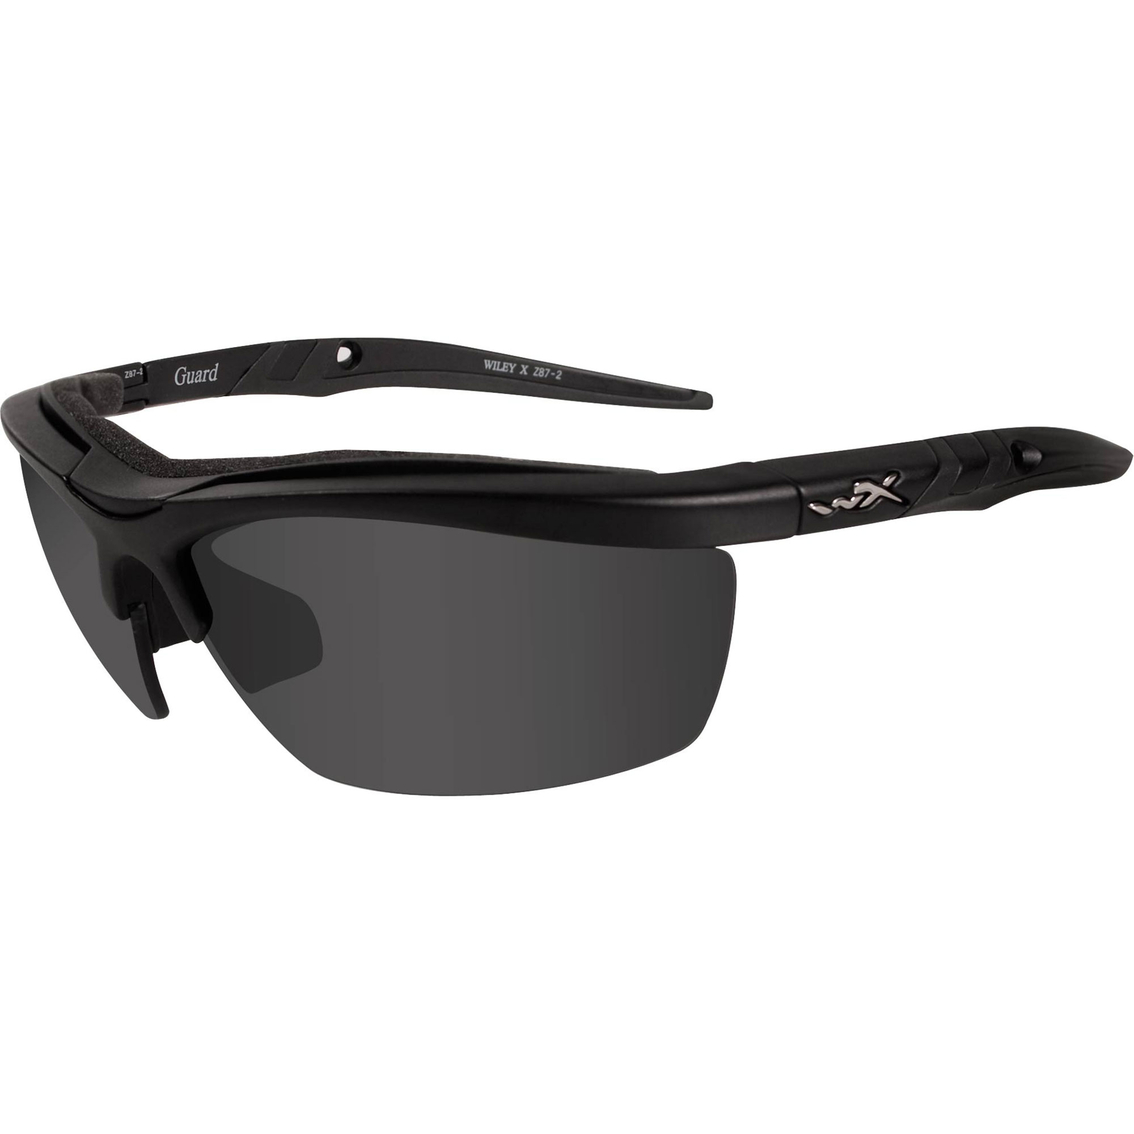 ee2edfcc58 Wiley X Guard Sunglasses